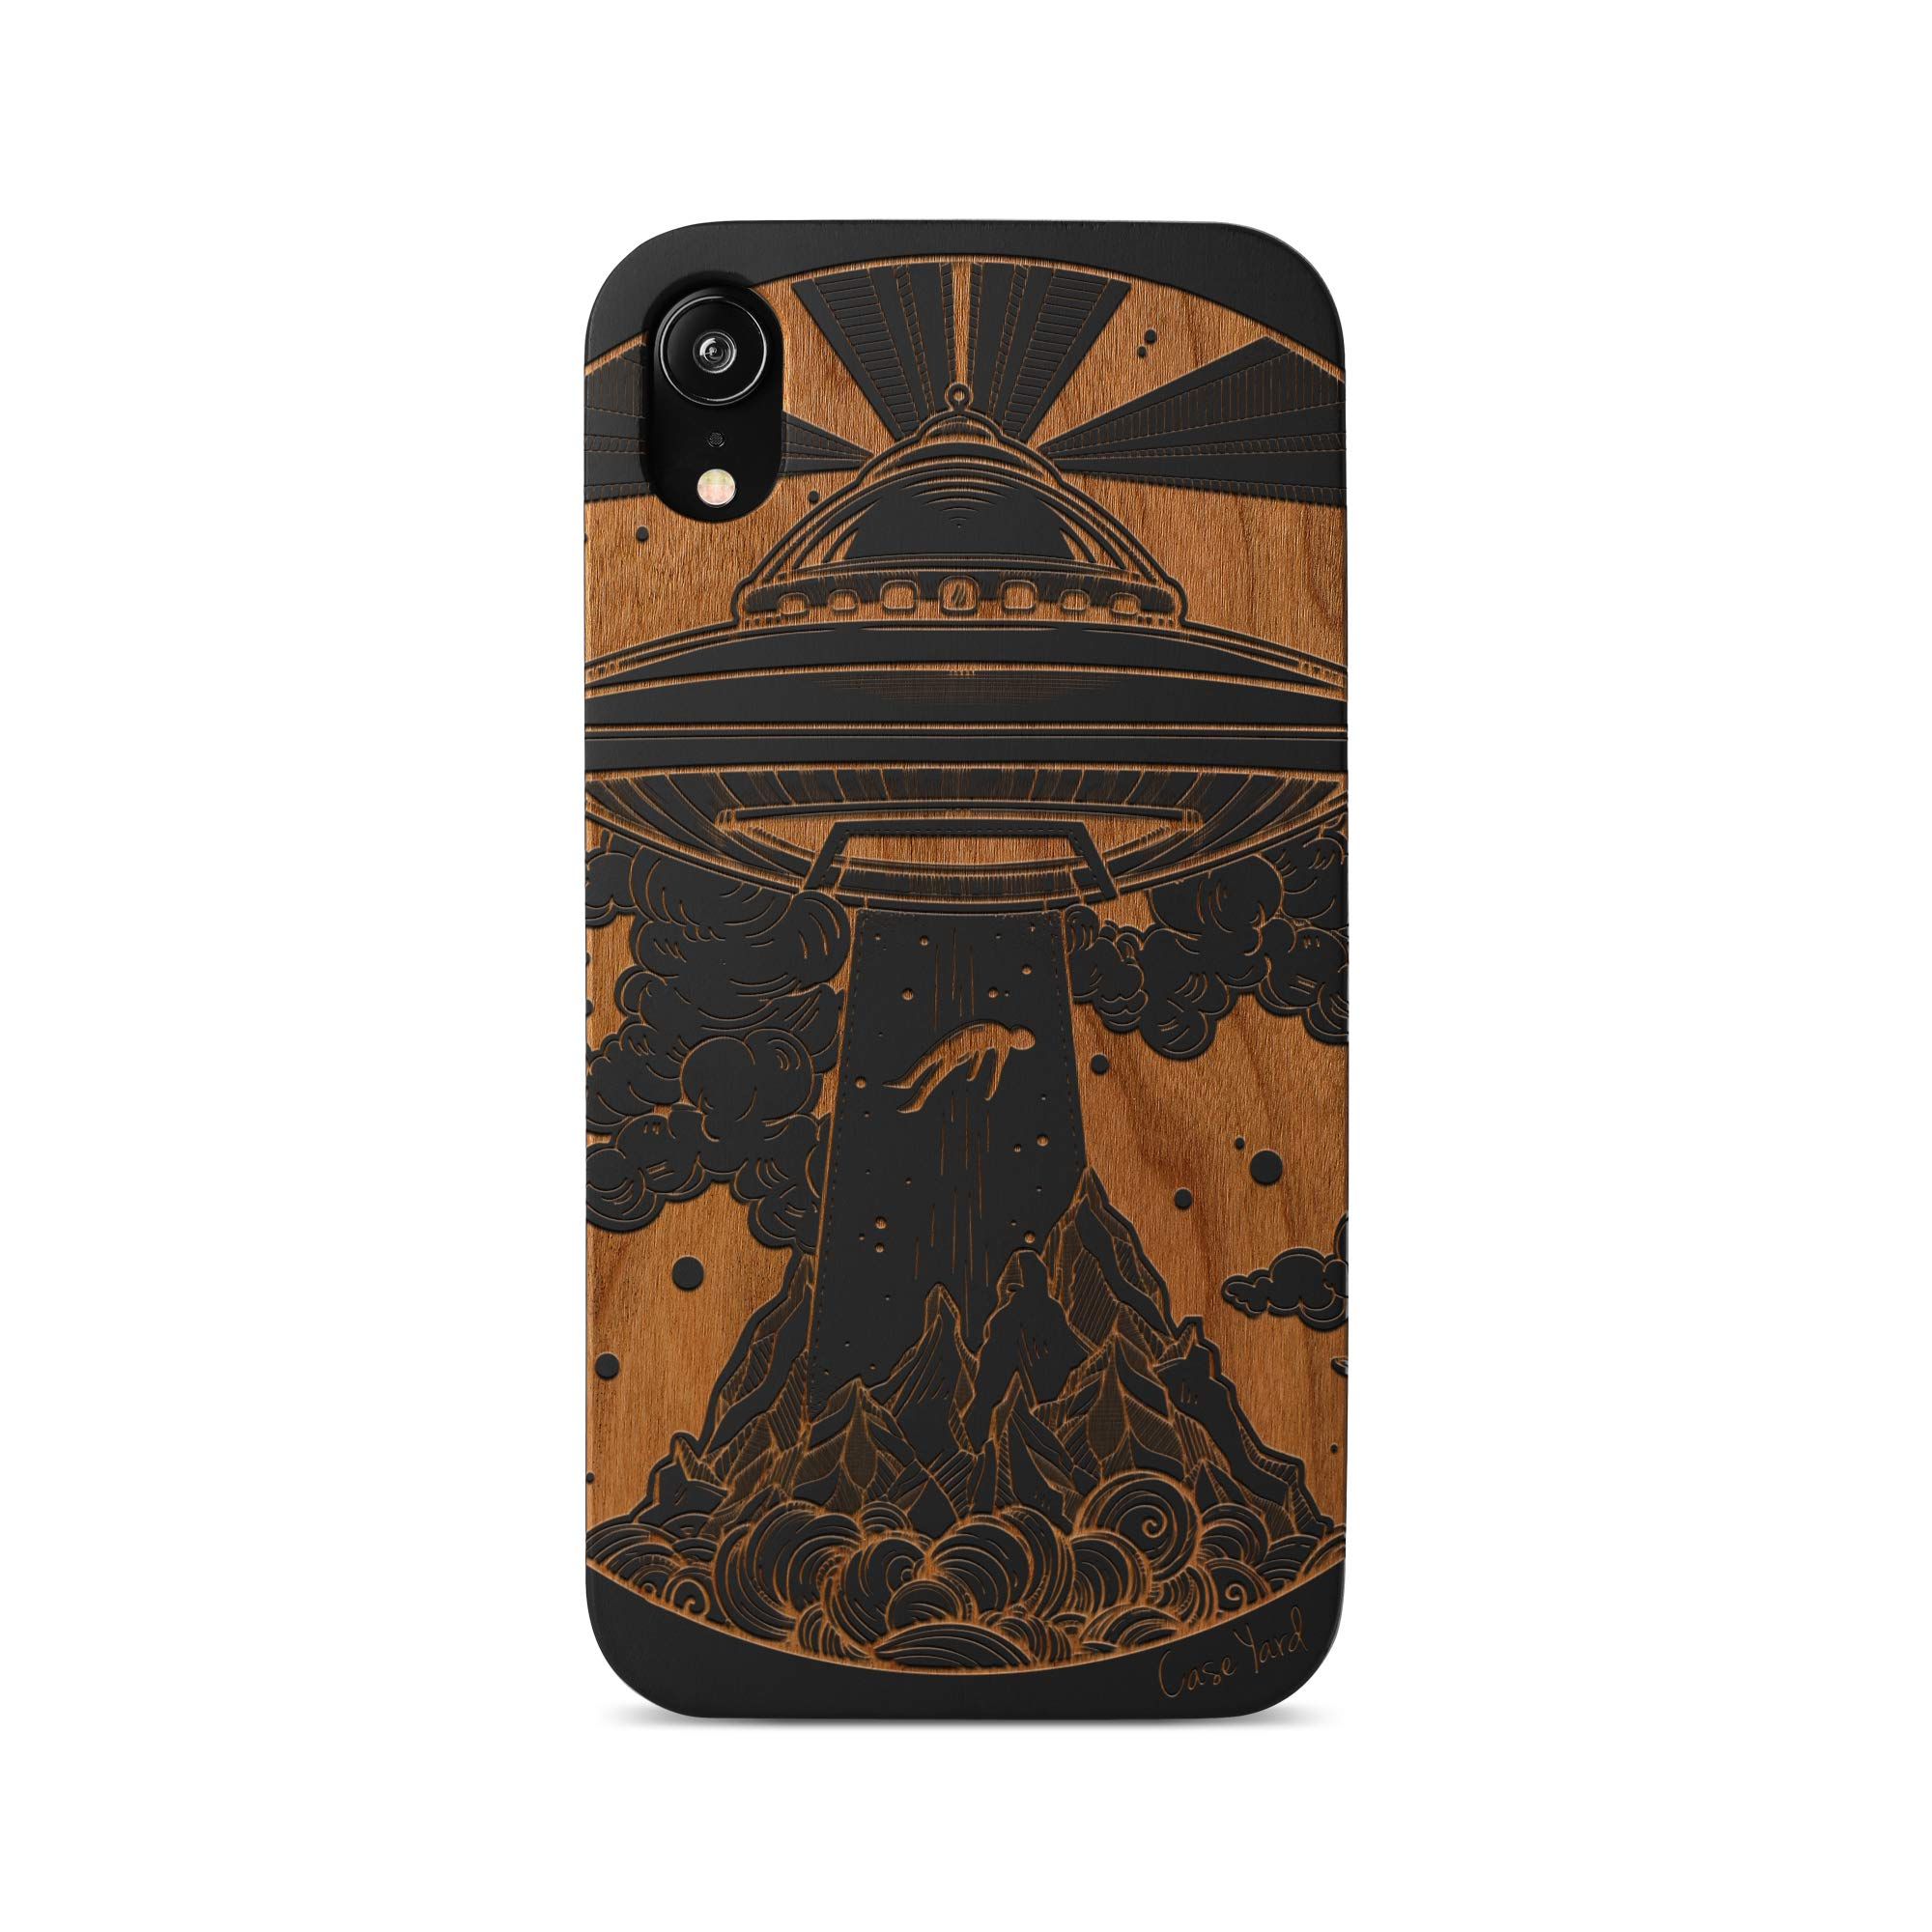 iPhone 11 Case by Case Yard Fit for iPhone 11 6.1-Inch [ 2019 Release ] Shock-Absorption iPhone 11 Phone Cover Wood Black iPhone 11 Cases Alien Spaceship